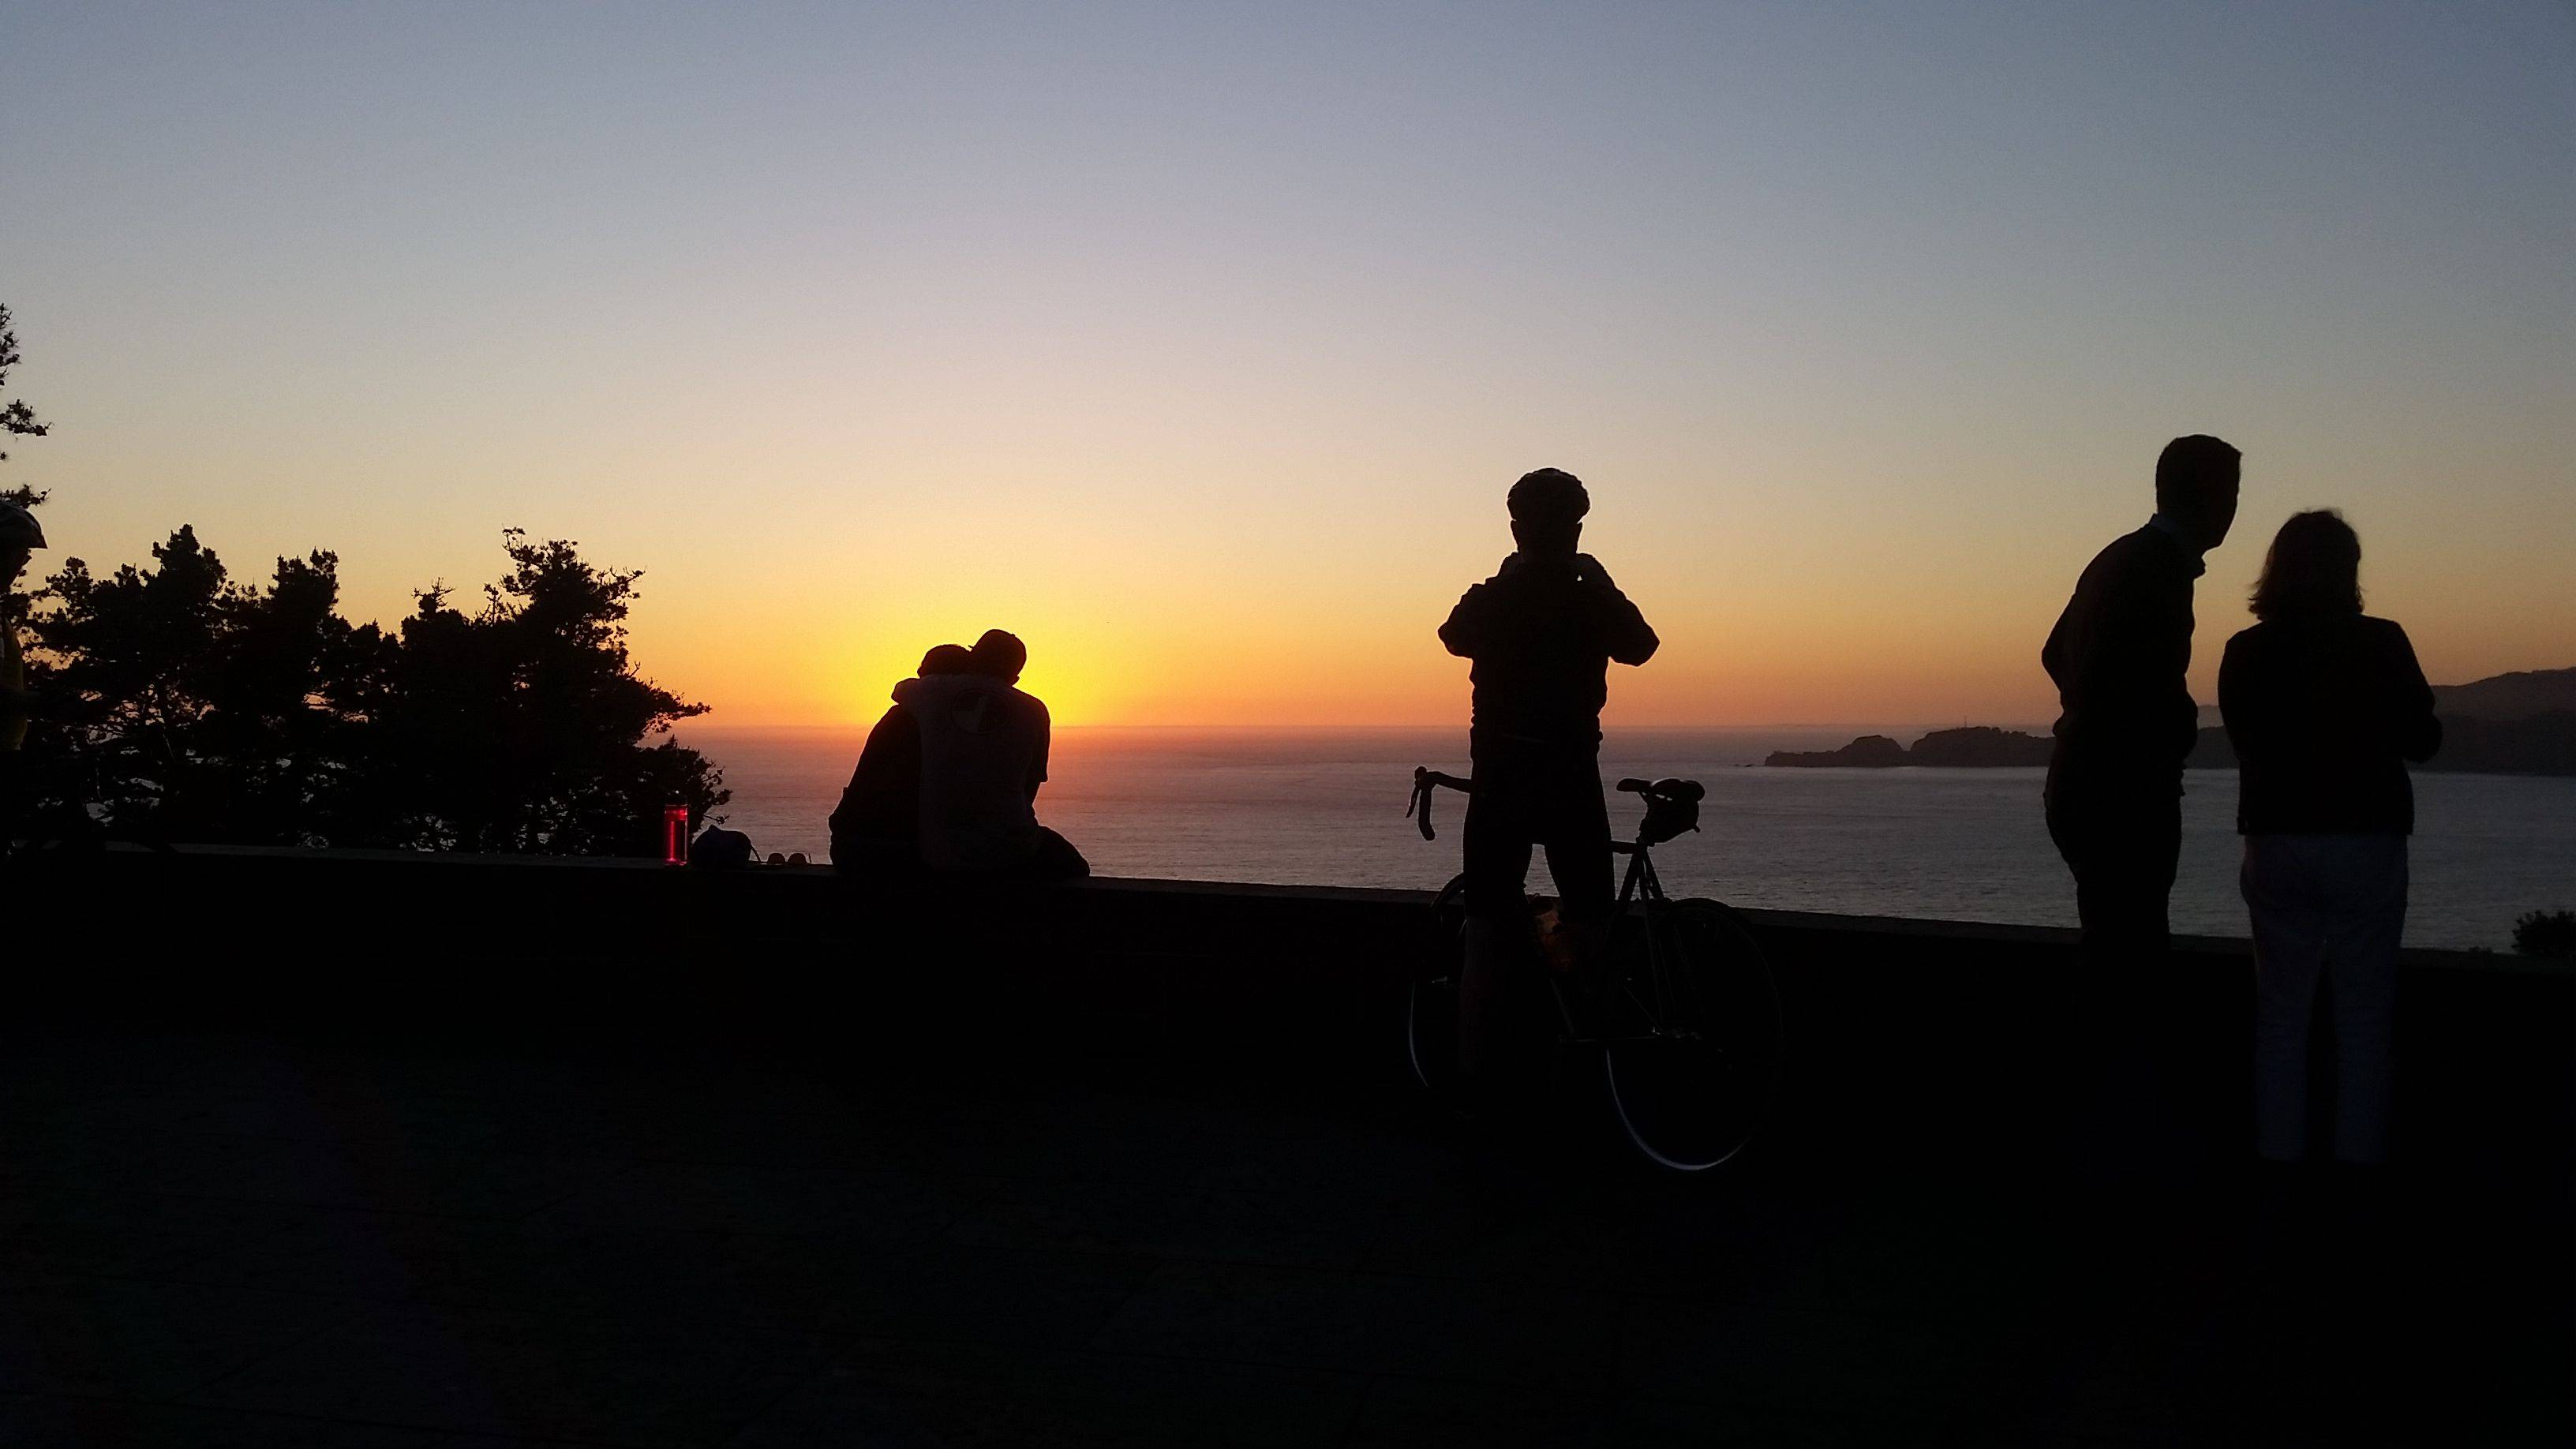 Sunset at Immigrant Point, Presidio, SF